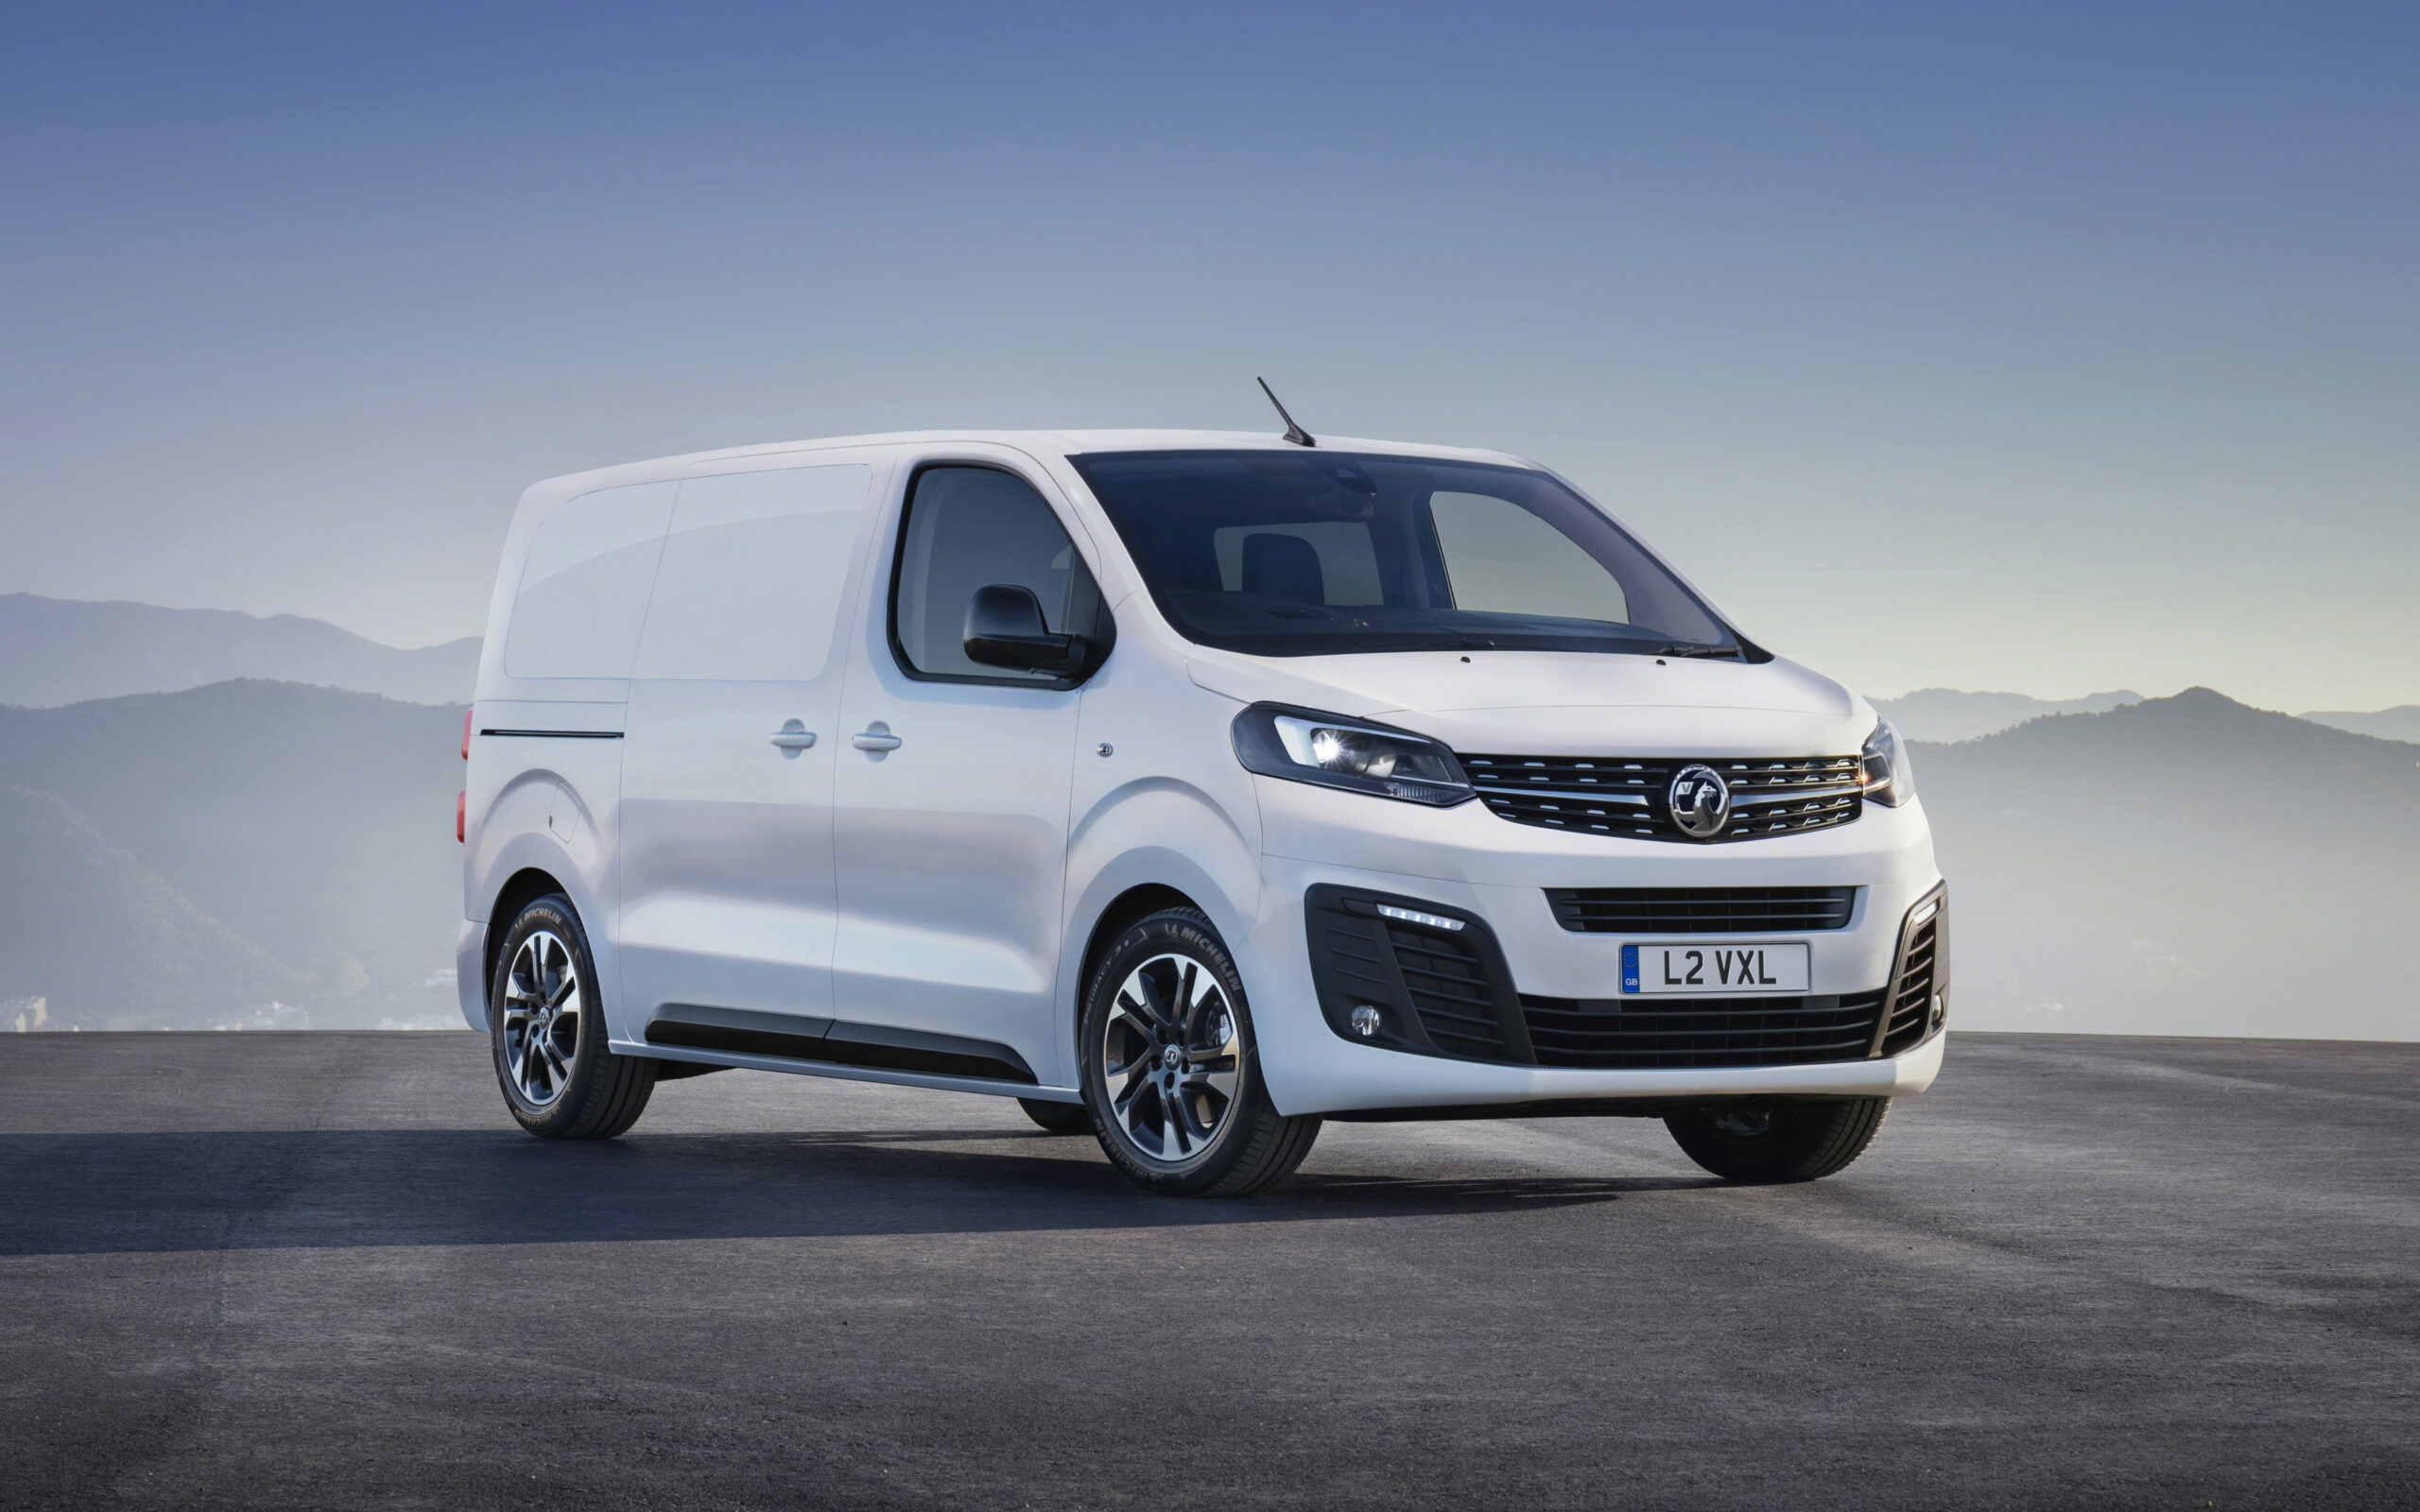 Vauxhall Vivaro 6 - VanGuide.co